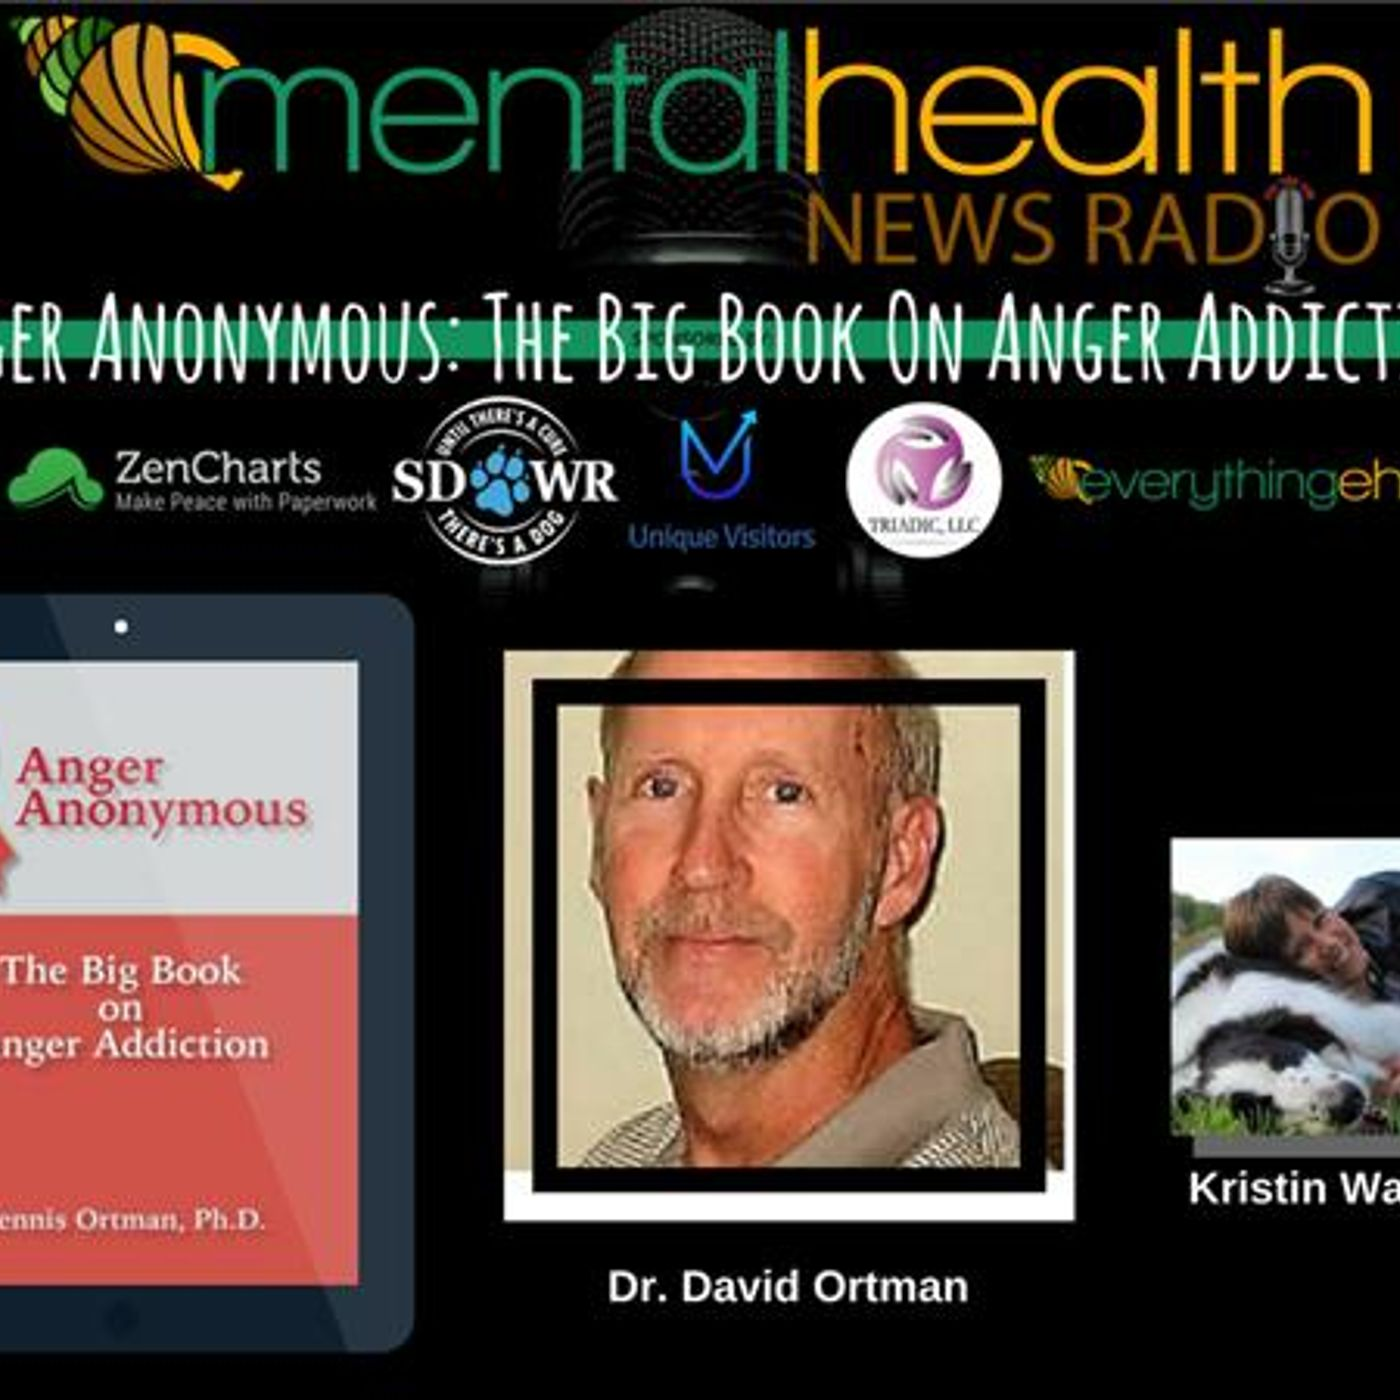 Mental Health News Radio - Anger Anonymous: The Big Book On Anger Addiction with Dr. Dennis Ortman